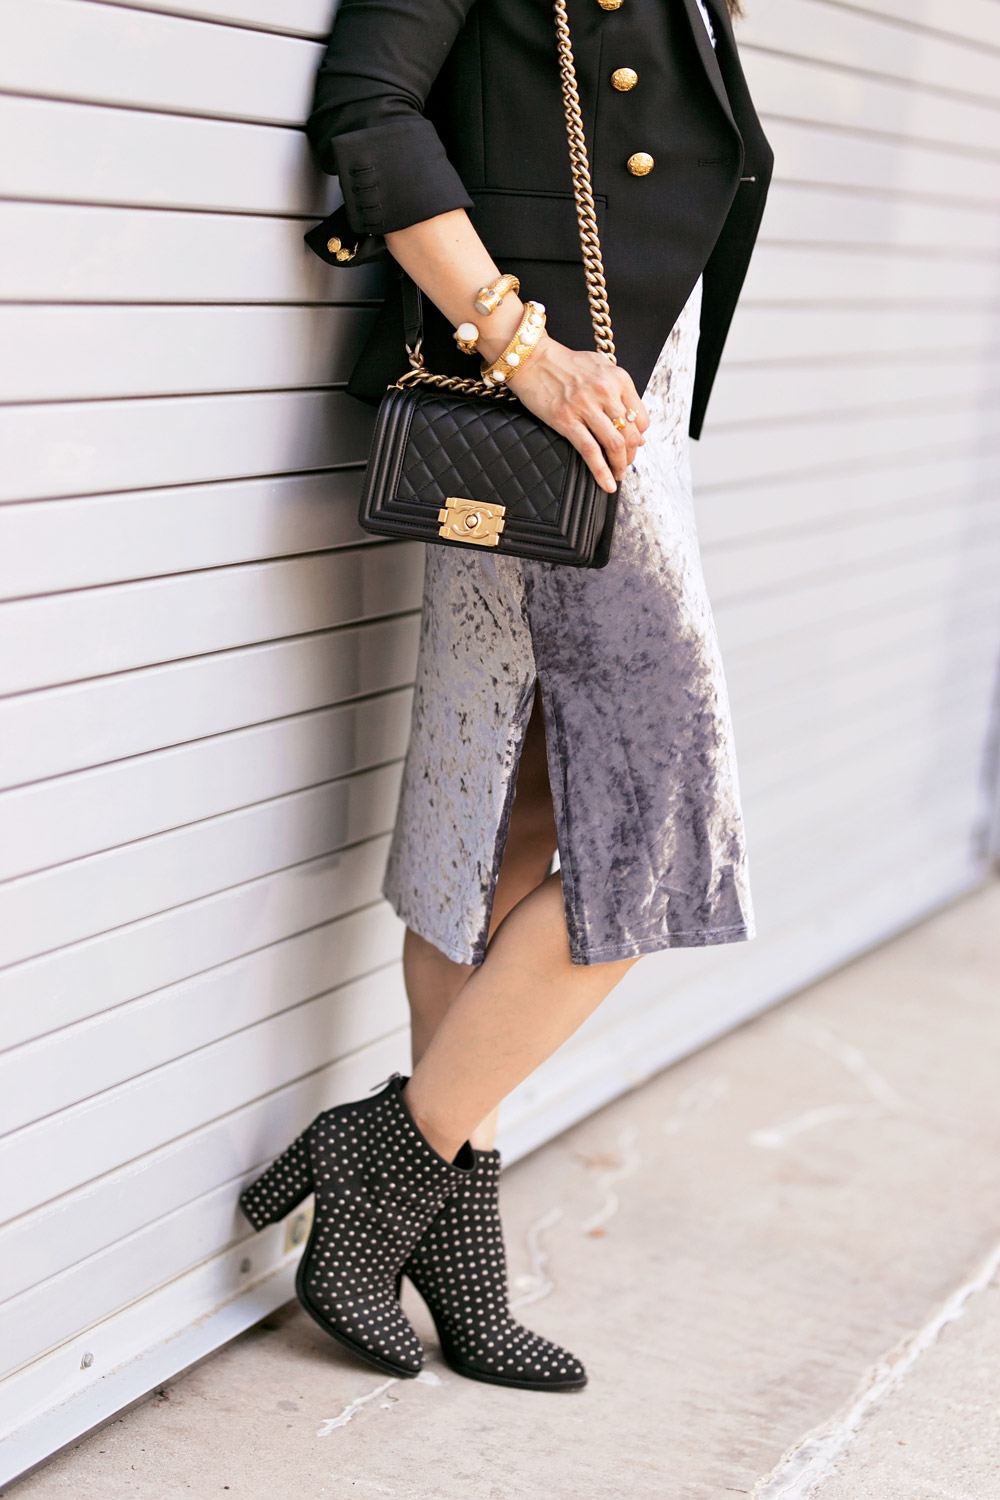 chanel boy bag grey velvet slip dress mercer edit studded booties